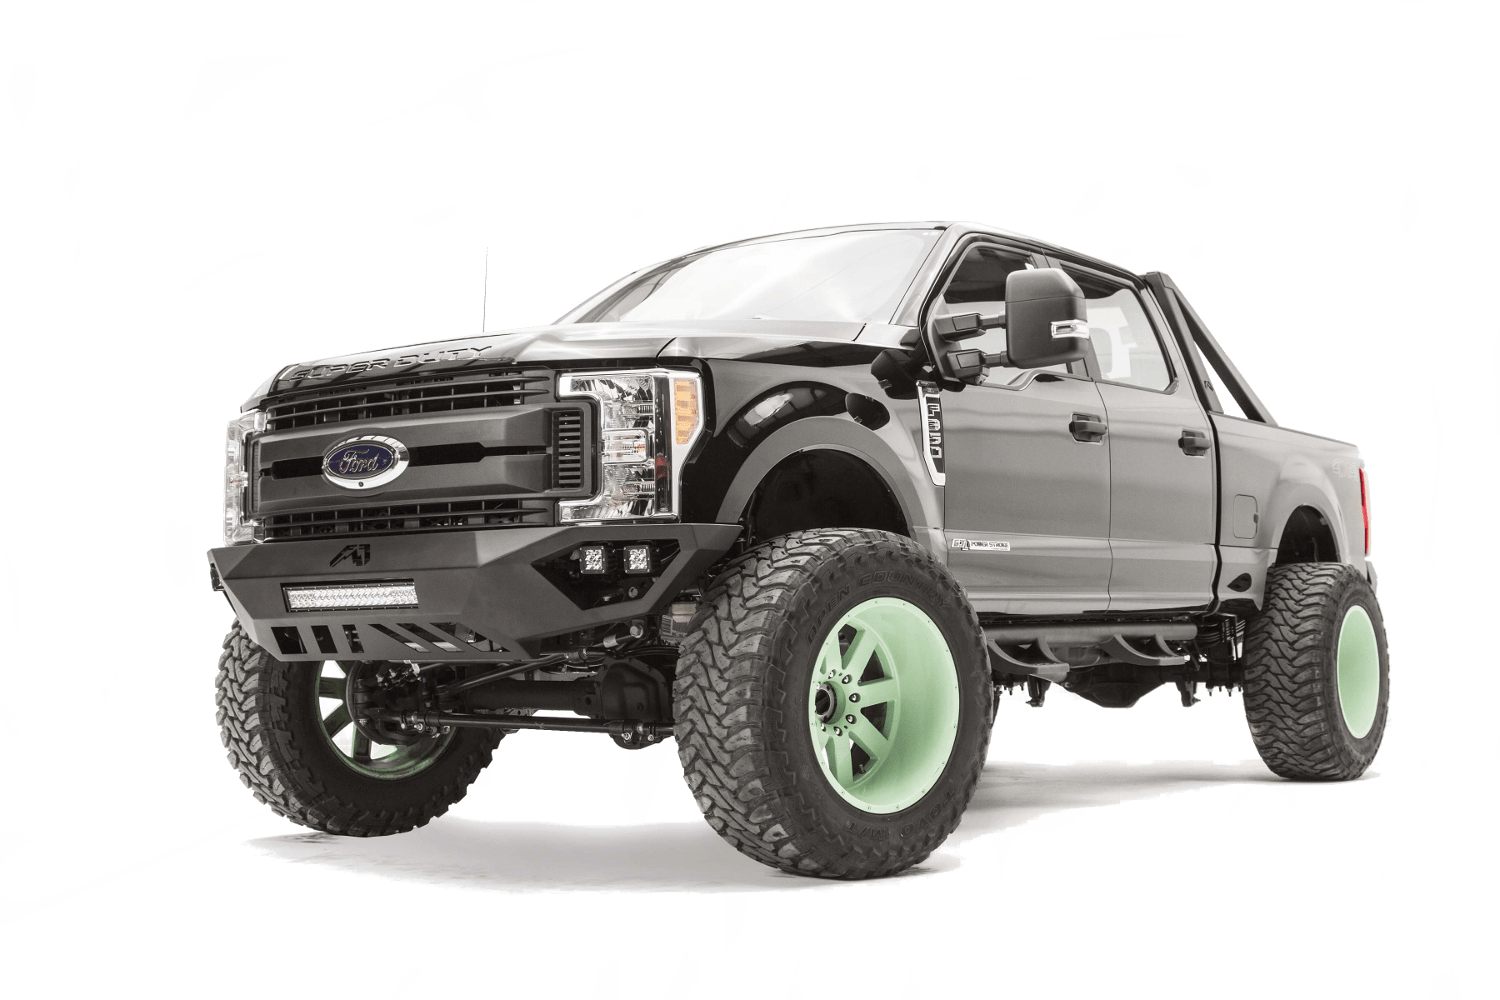 Vengeance front bumpers on a Ford SuperDuty.